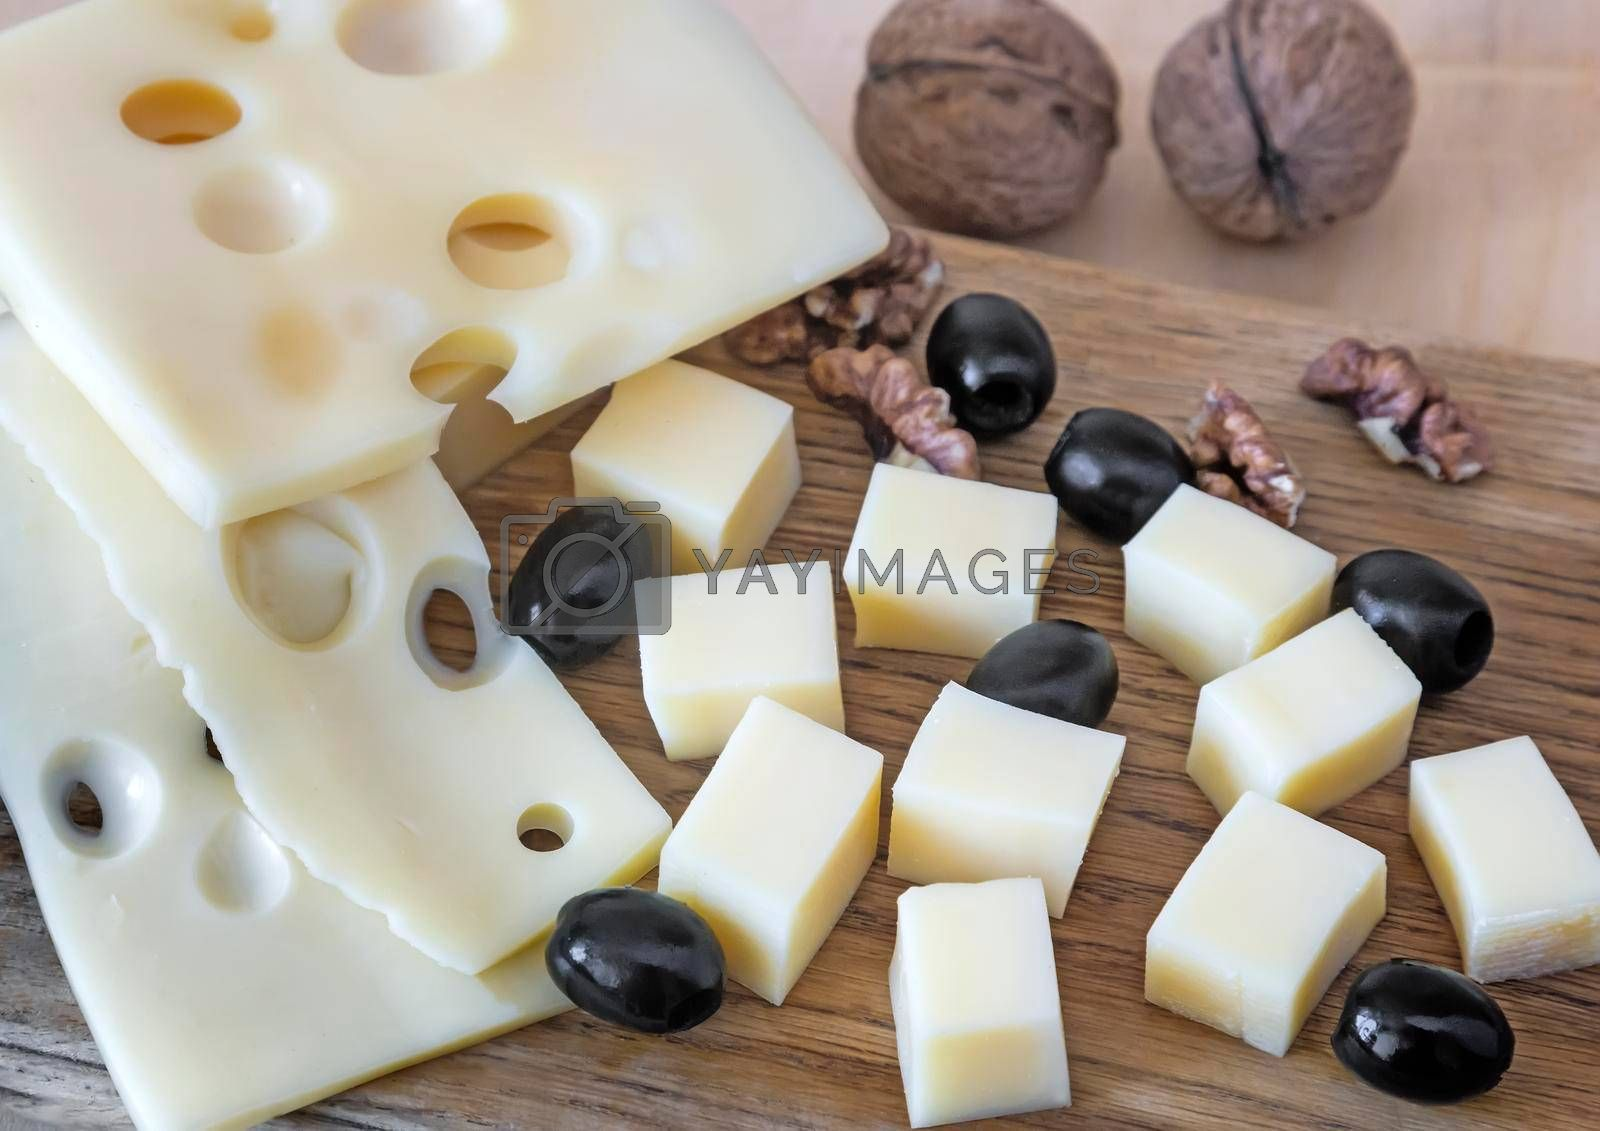 On the table-sliced cheese, walnuts and olives.